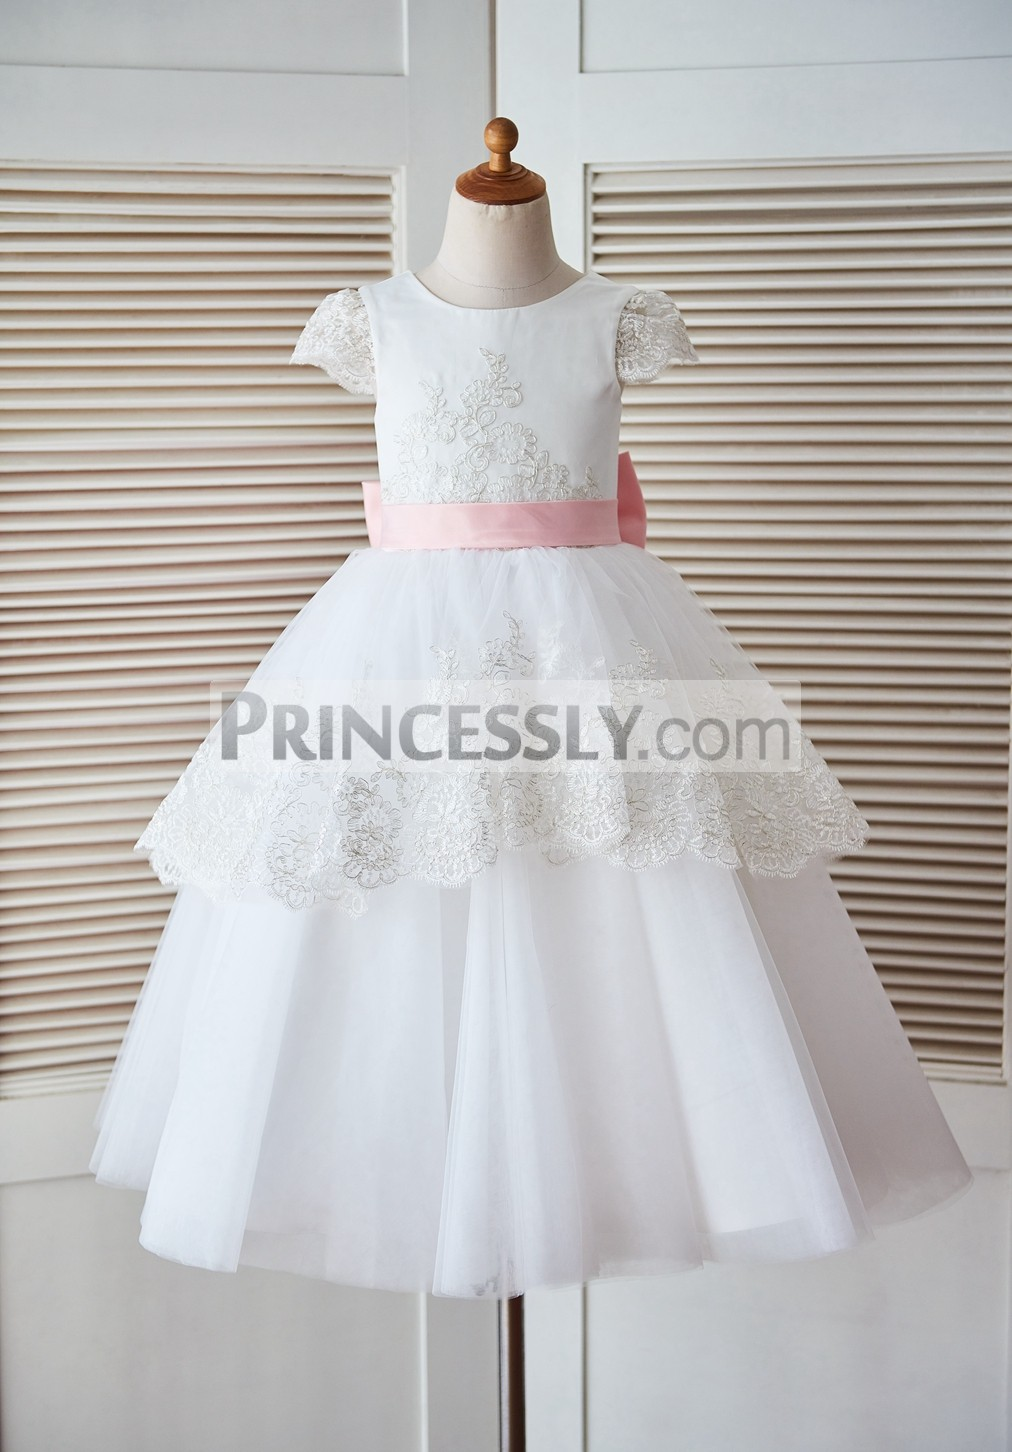 22ed6ac7fa1 Cap Sleeves Lace Tulle Satin Cupcake Flower Girl Dress with Blush ...